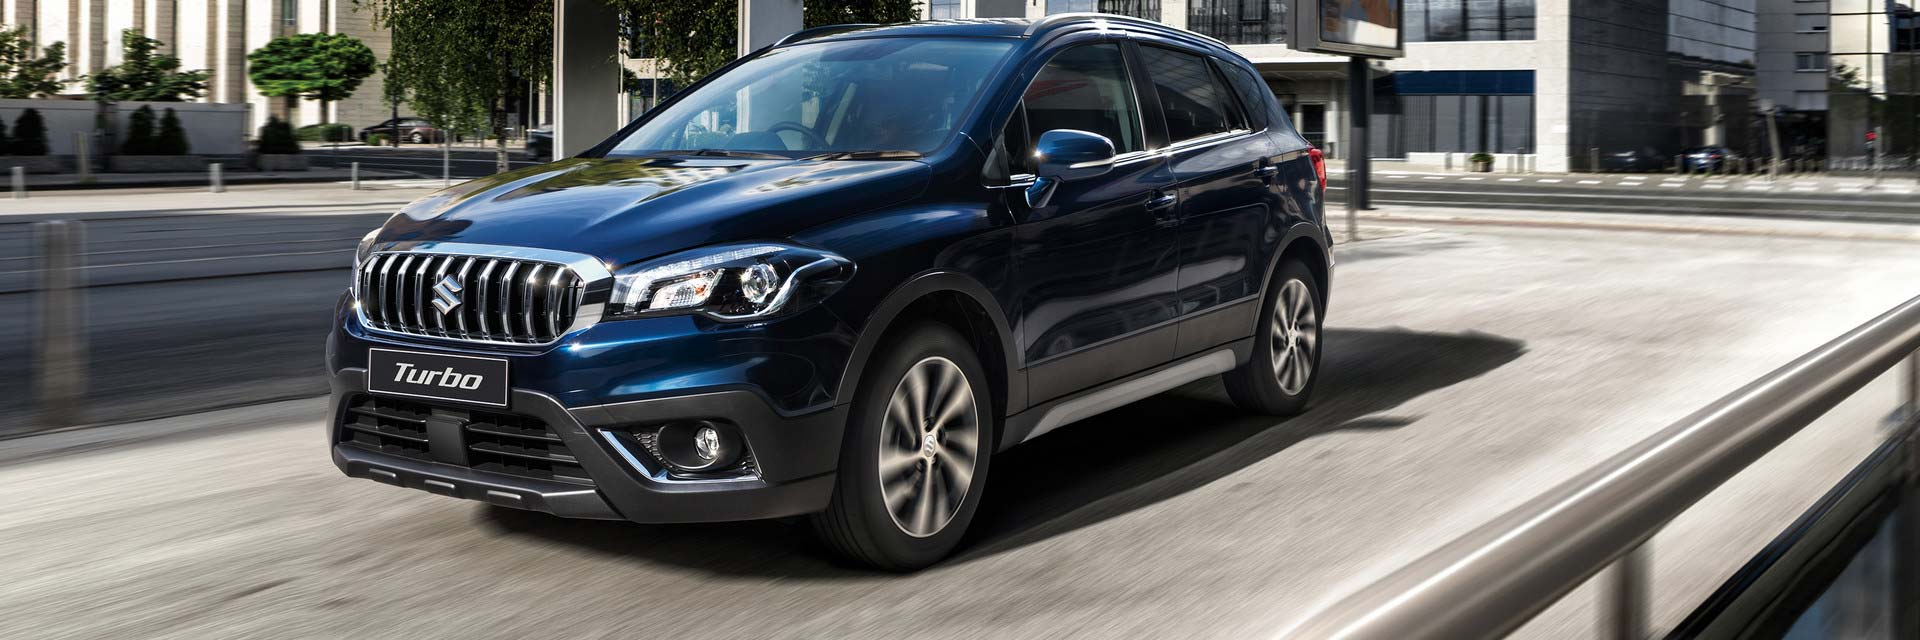 S-Cross Overview 4